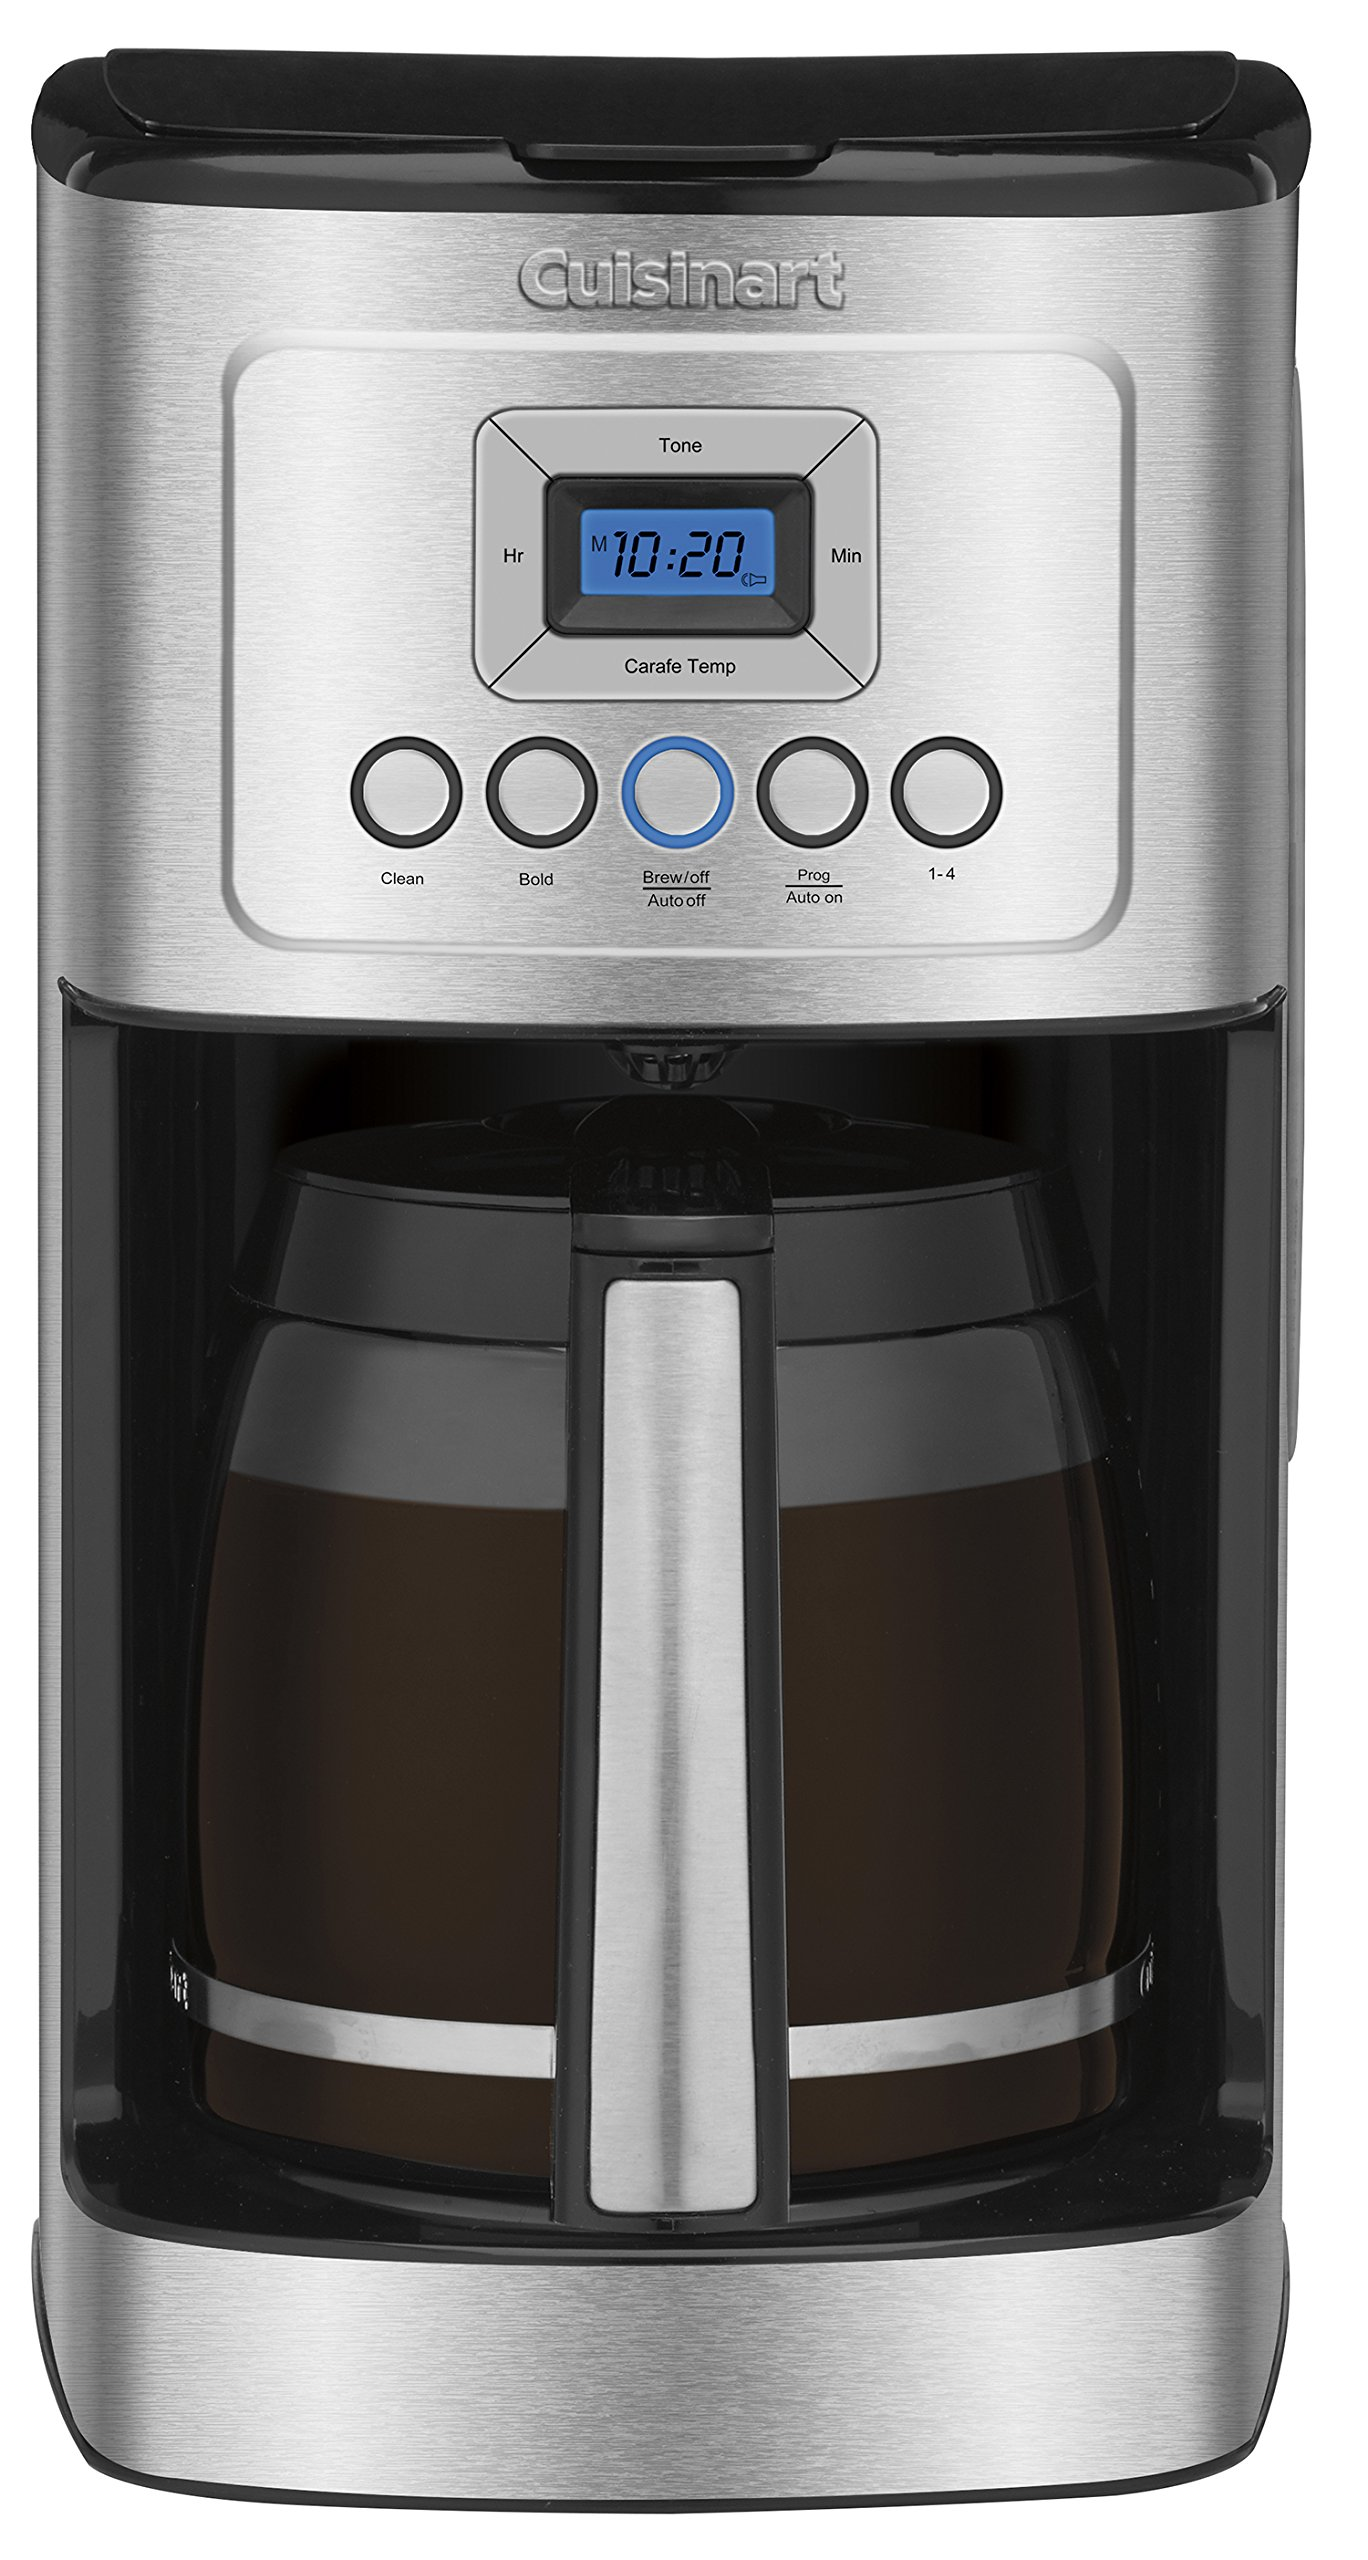 Cuisinart DCC-3200 14-Cup Glass Carafe with Stainless Steel Handle Programmable Coffeemaker, Silver by Cuisinart